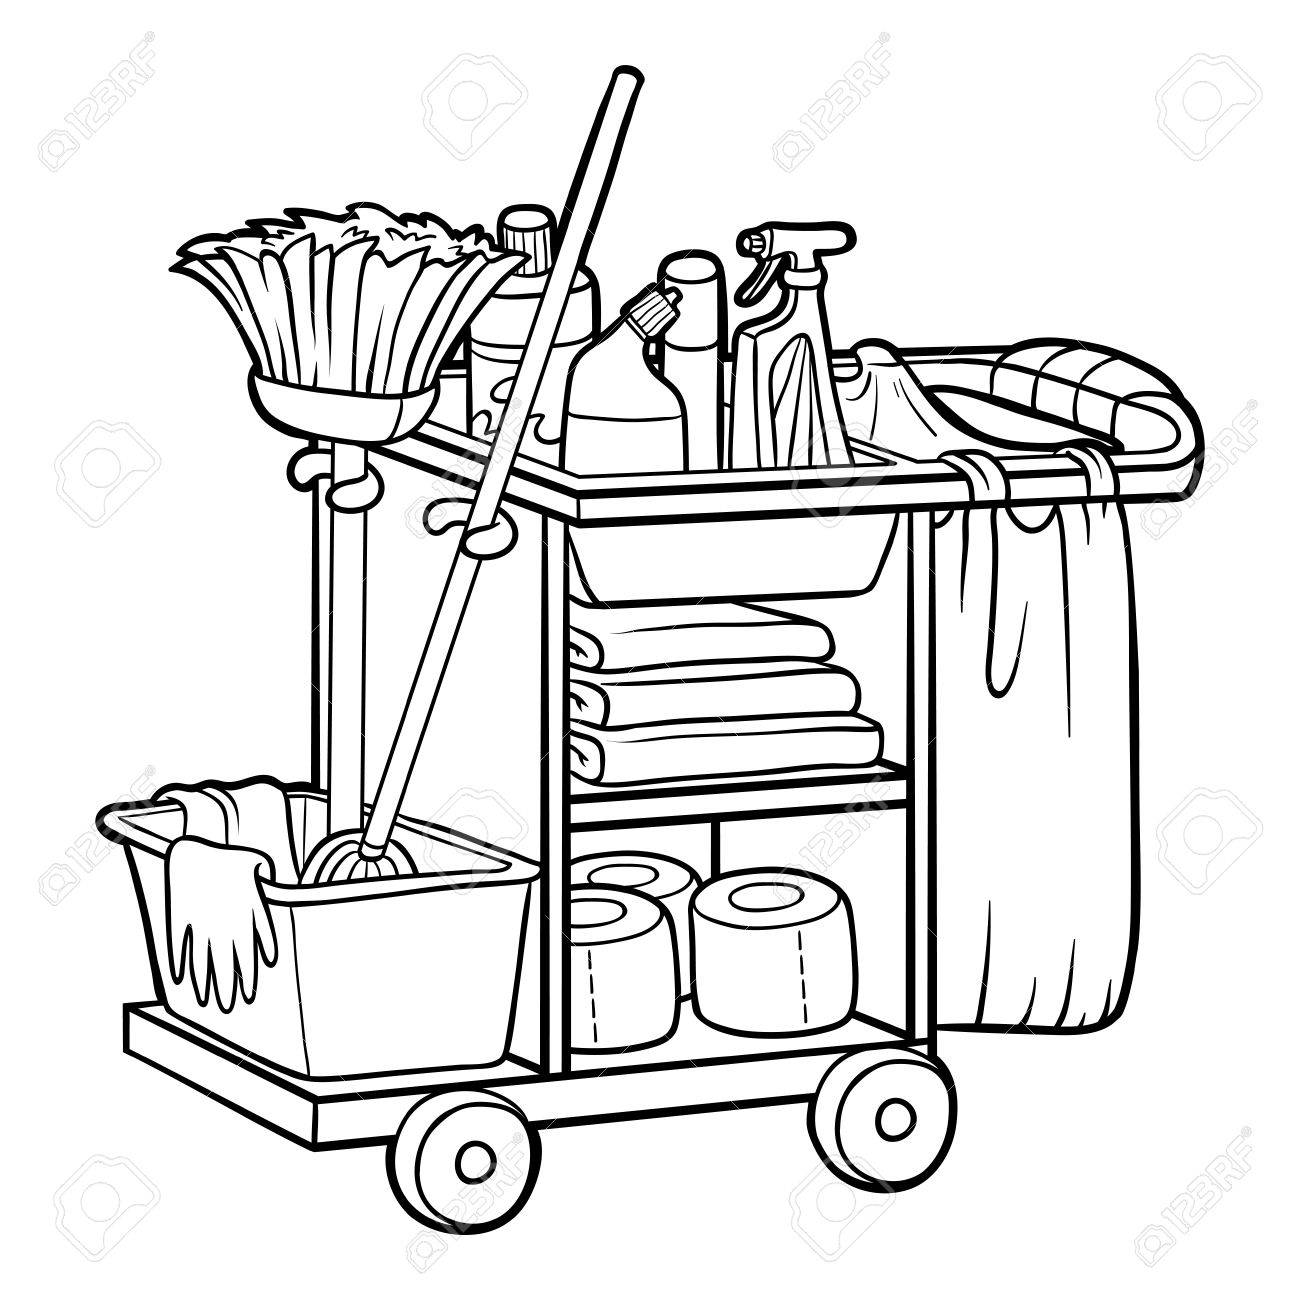 Coloring book for children, Maid cart - 81574622